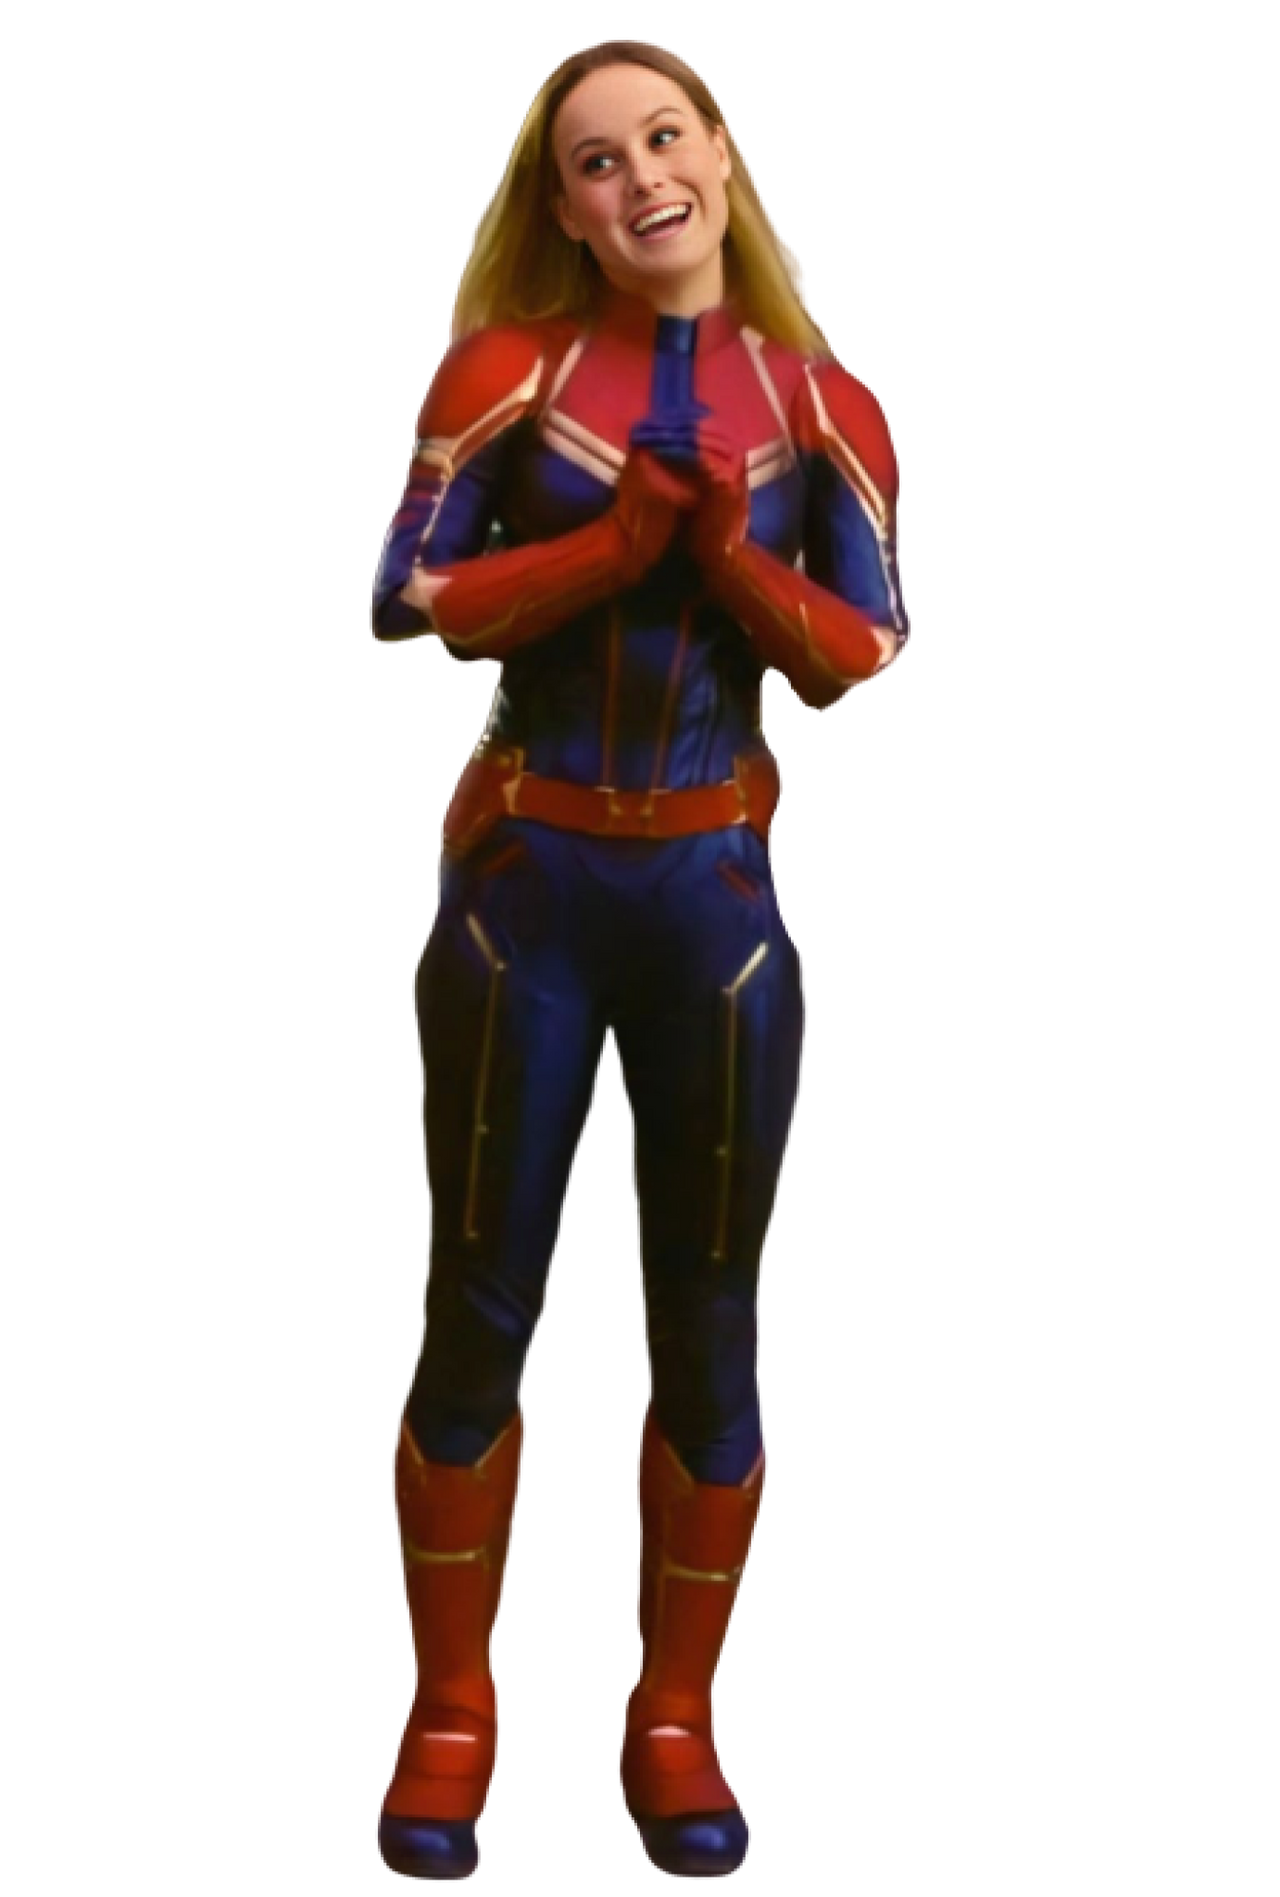 Captain Marvel Endgame Concept Png By Iwasboredsoididthis On Deviantart Only show results for png files. captain marvel endgame concept png